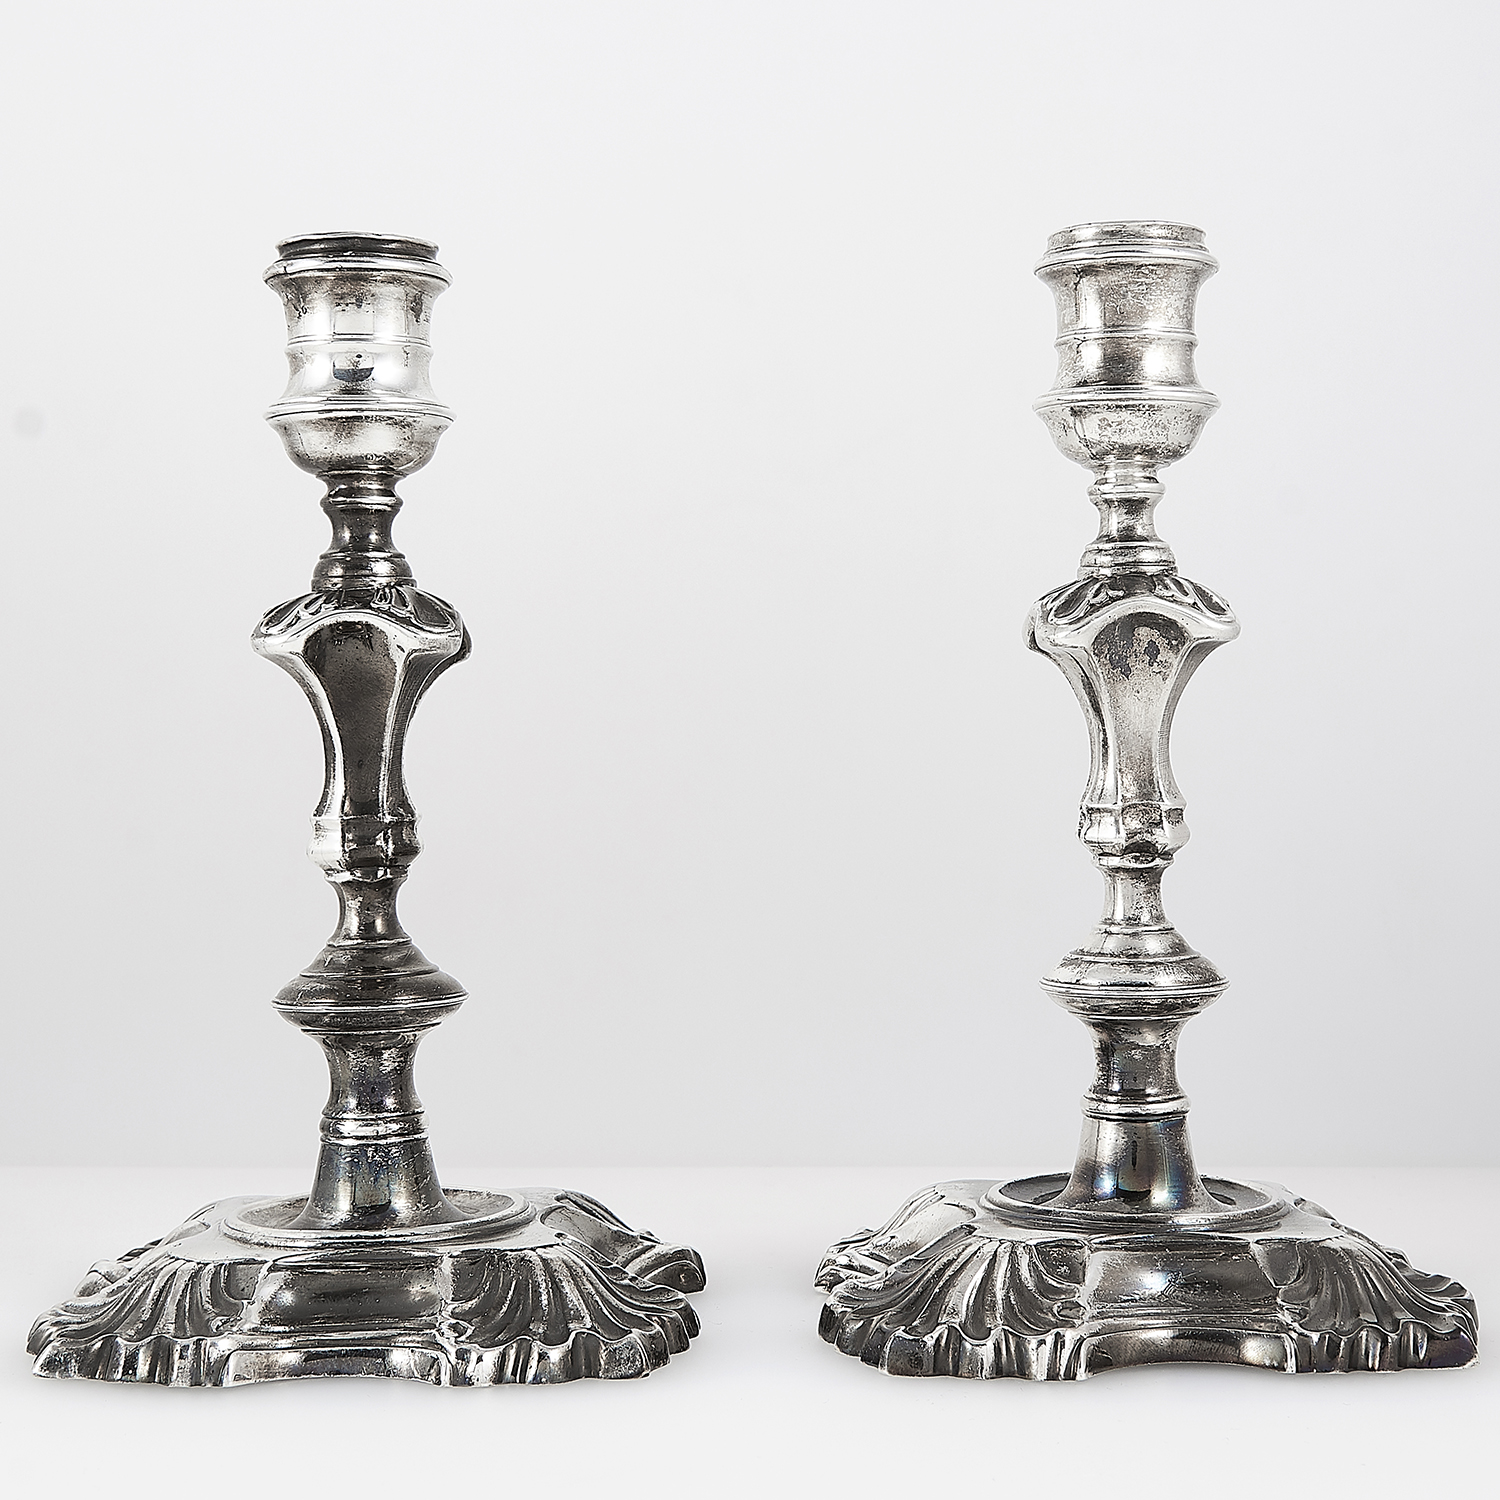 PAIR OF ANTIQUE GEORGE III STERLING SILVER CANDLESTICKS, JAMES GOULD, LONDON 1767 the stylised stems